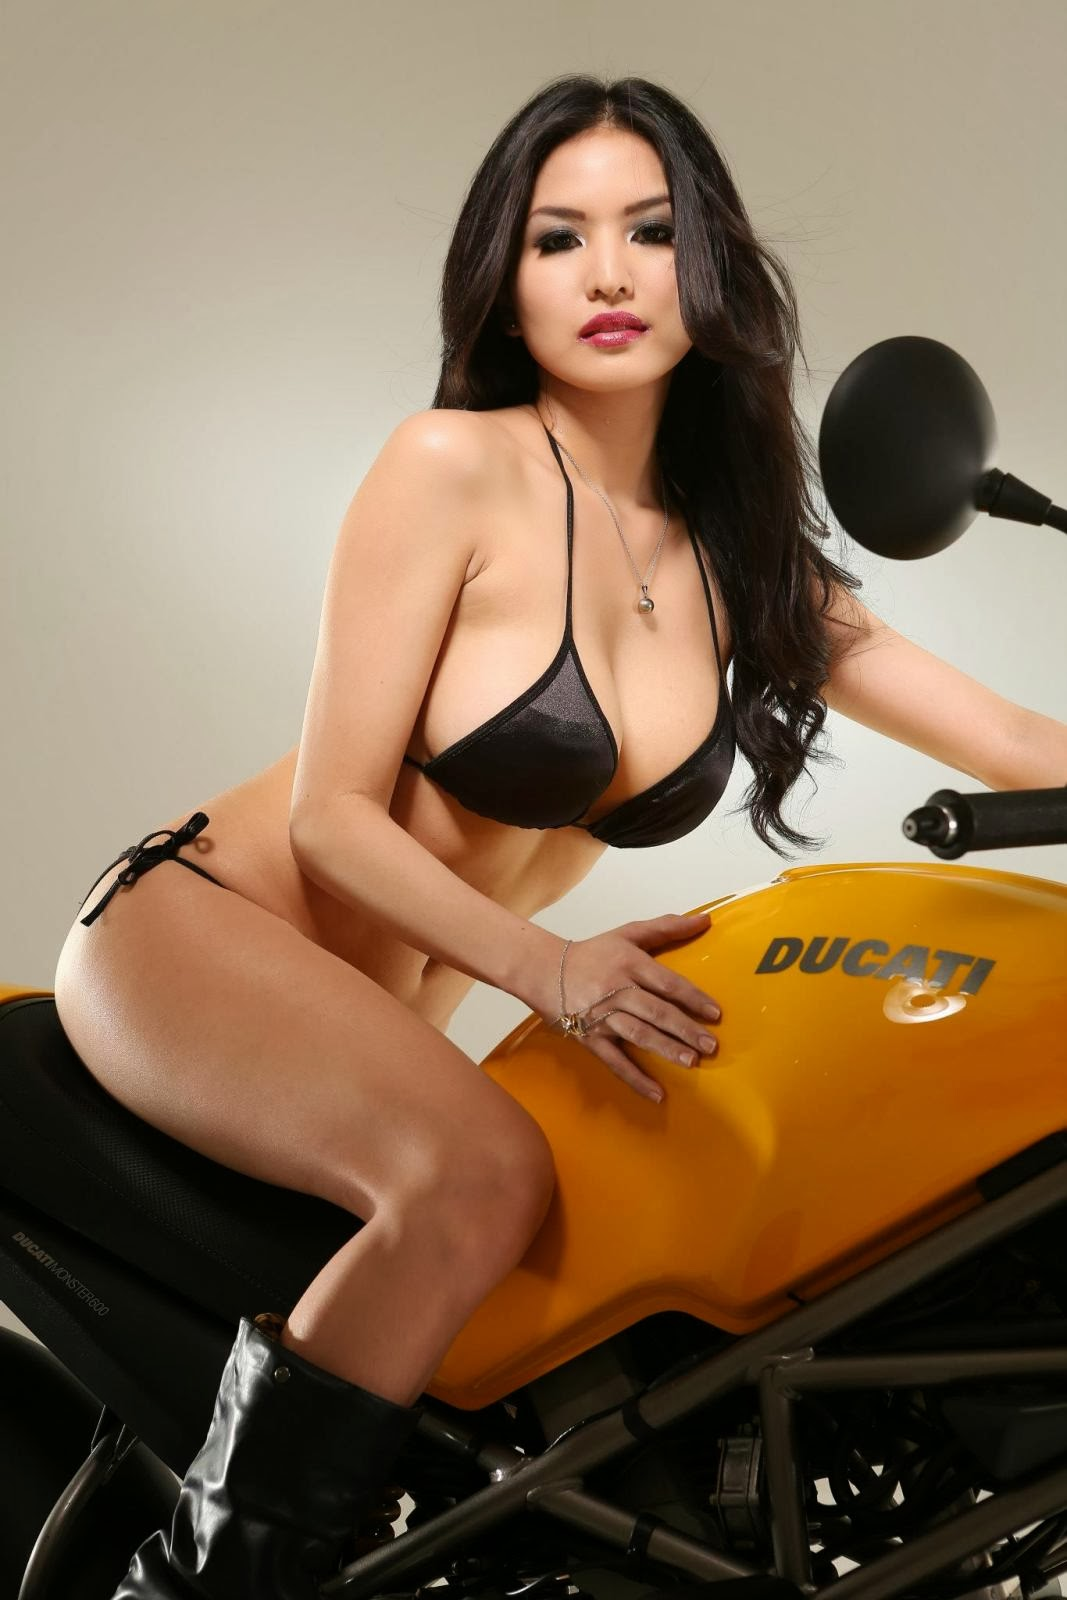 abby poblador with ducati big bike 01